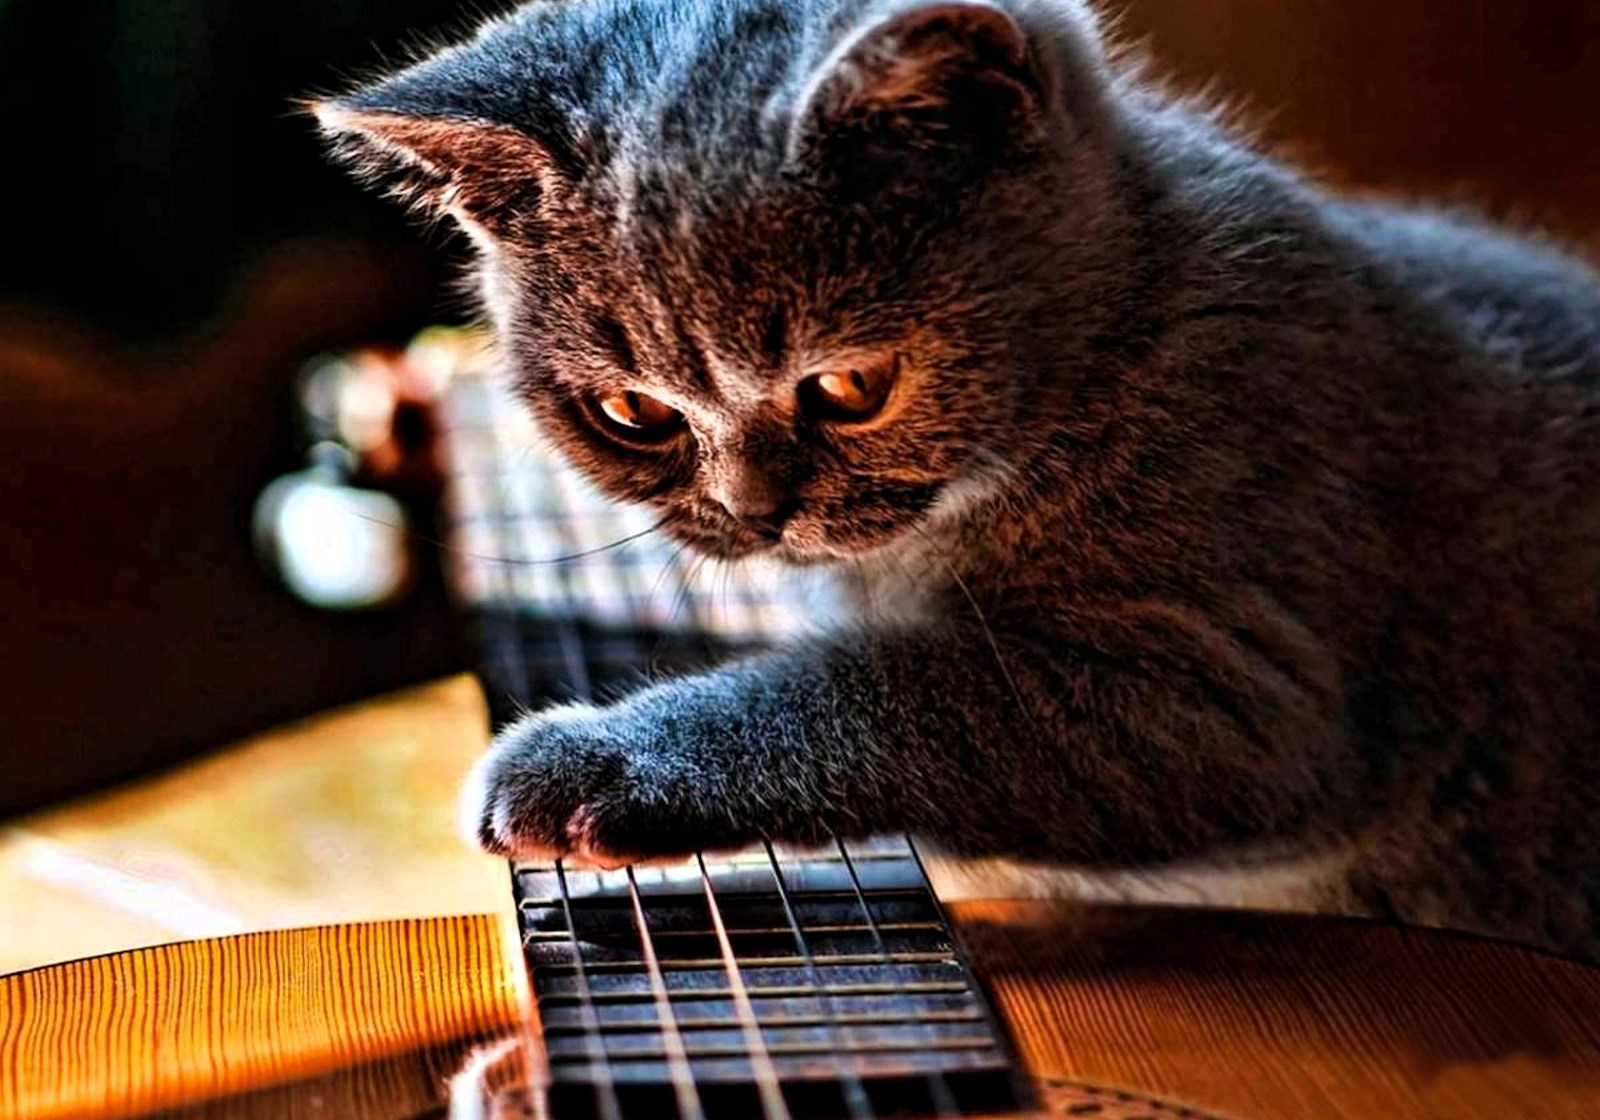 https://02varvara.files.wordpress.com/2015/03/00-cat-with-guitar-09-03-15.jpg